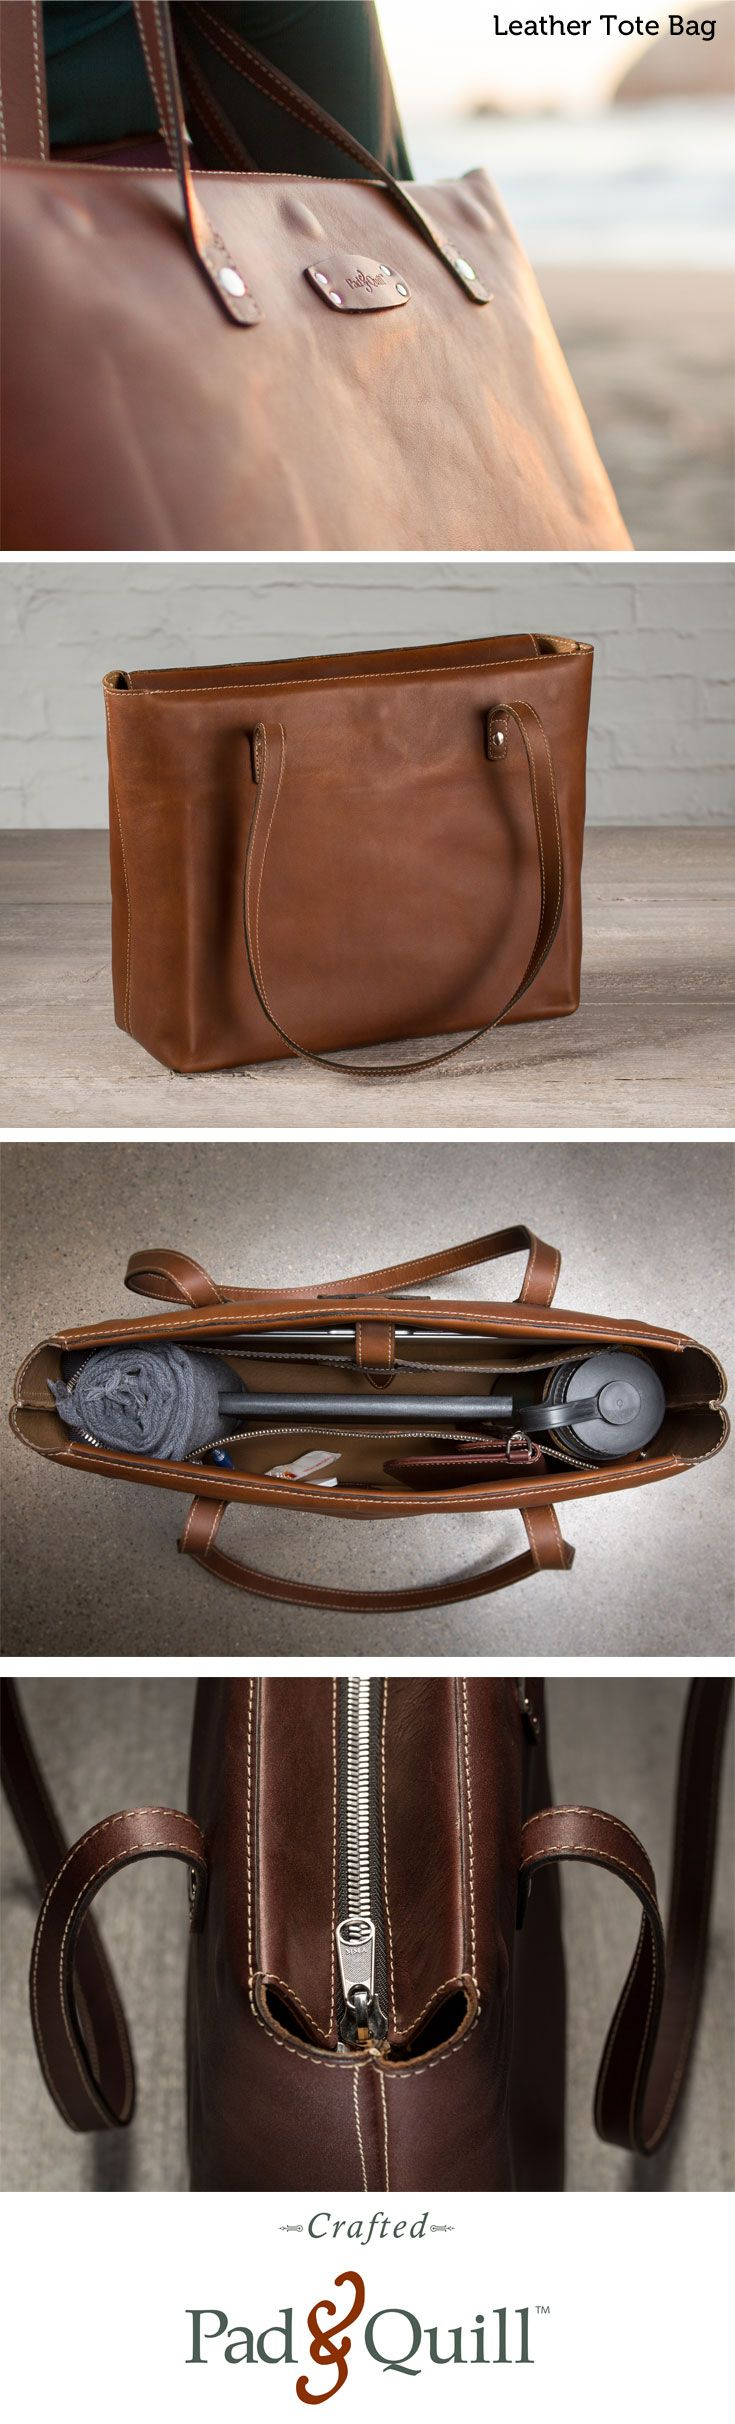 "www.PadandQuill.com Meet the Leather Tote Bag. Crafted for today's tech lifestyle with ample room for up to a 15"" Macbook, iPad, chargers and accessories, and more. A special zippered pocket keeps your loose items safe. Ever health conscious, the tote also boasts a leather, snap-closed loop to hold your water bottle (or wine depending on the day) and ample room for all of your daily needs. Perfect from the board room to the beach."